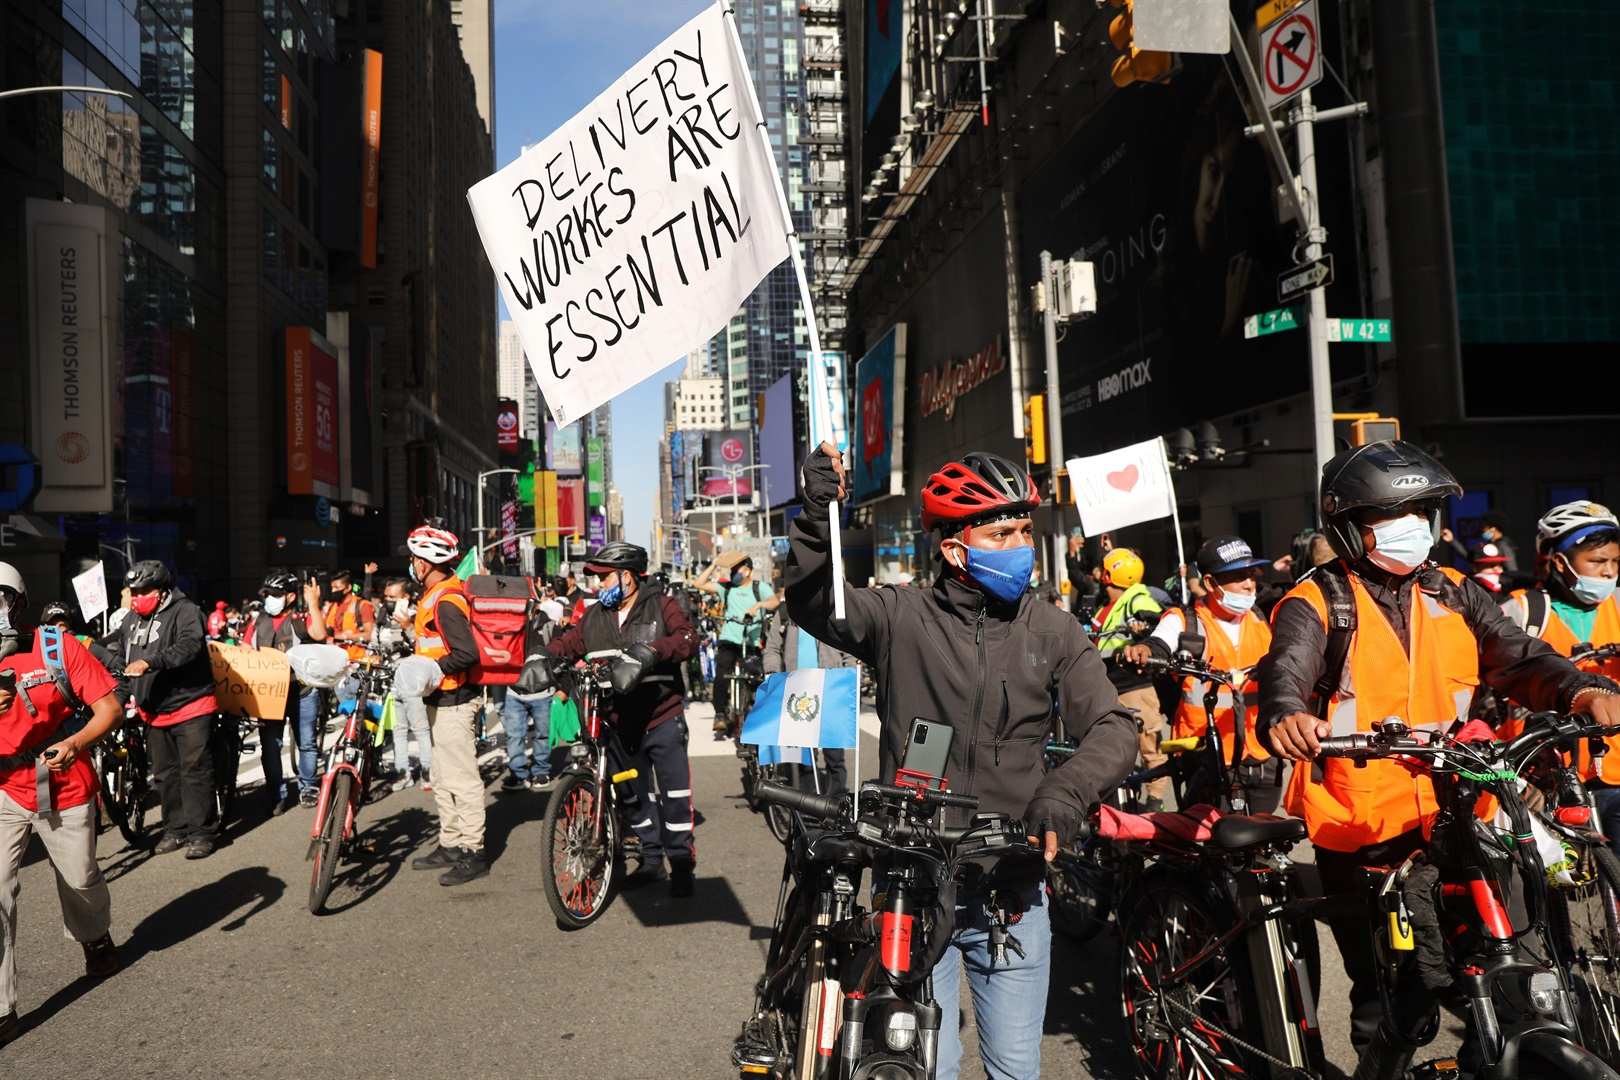 New York City food delivery workers win the right to bathroom access on the job - Business Insider South Africa